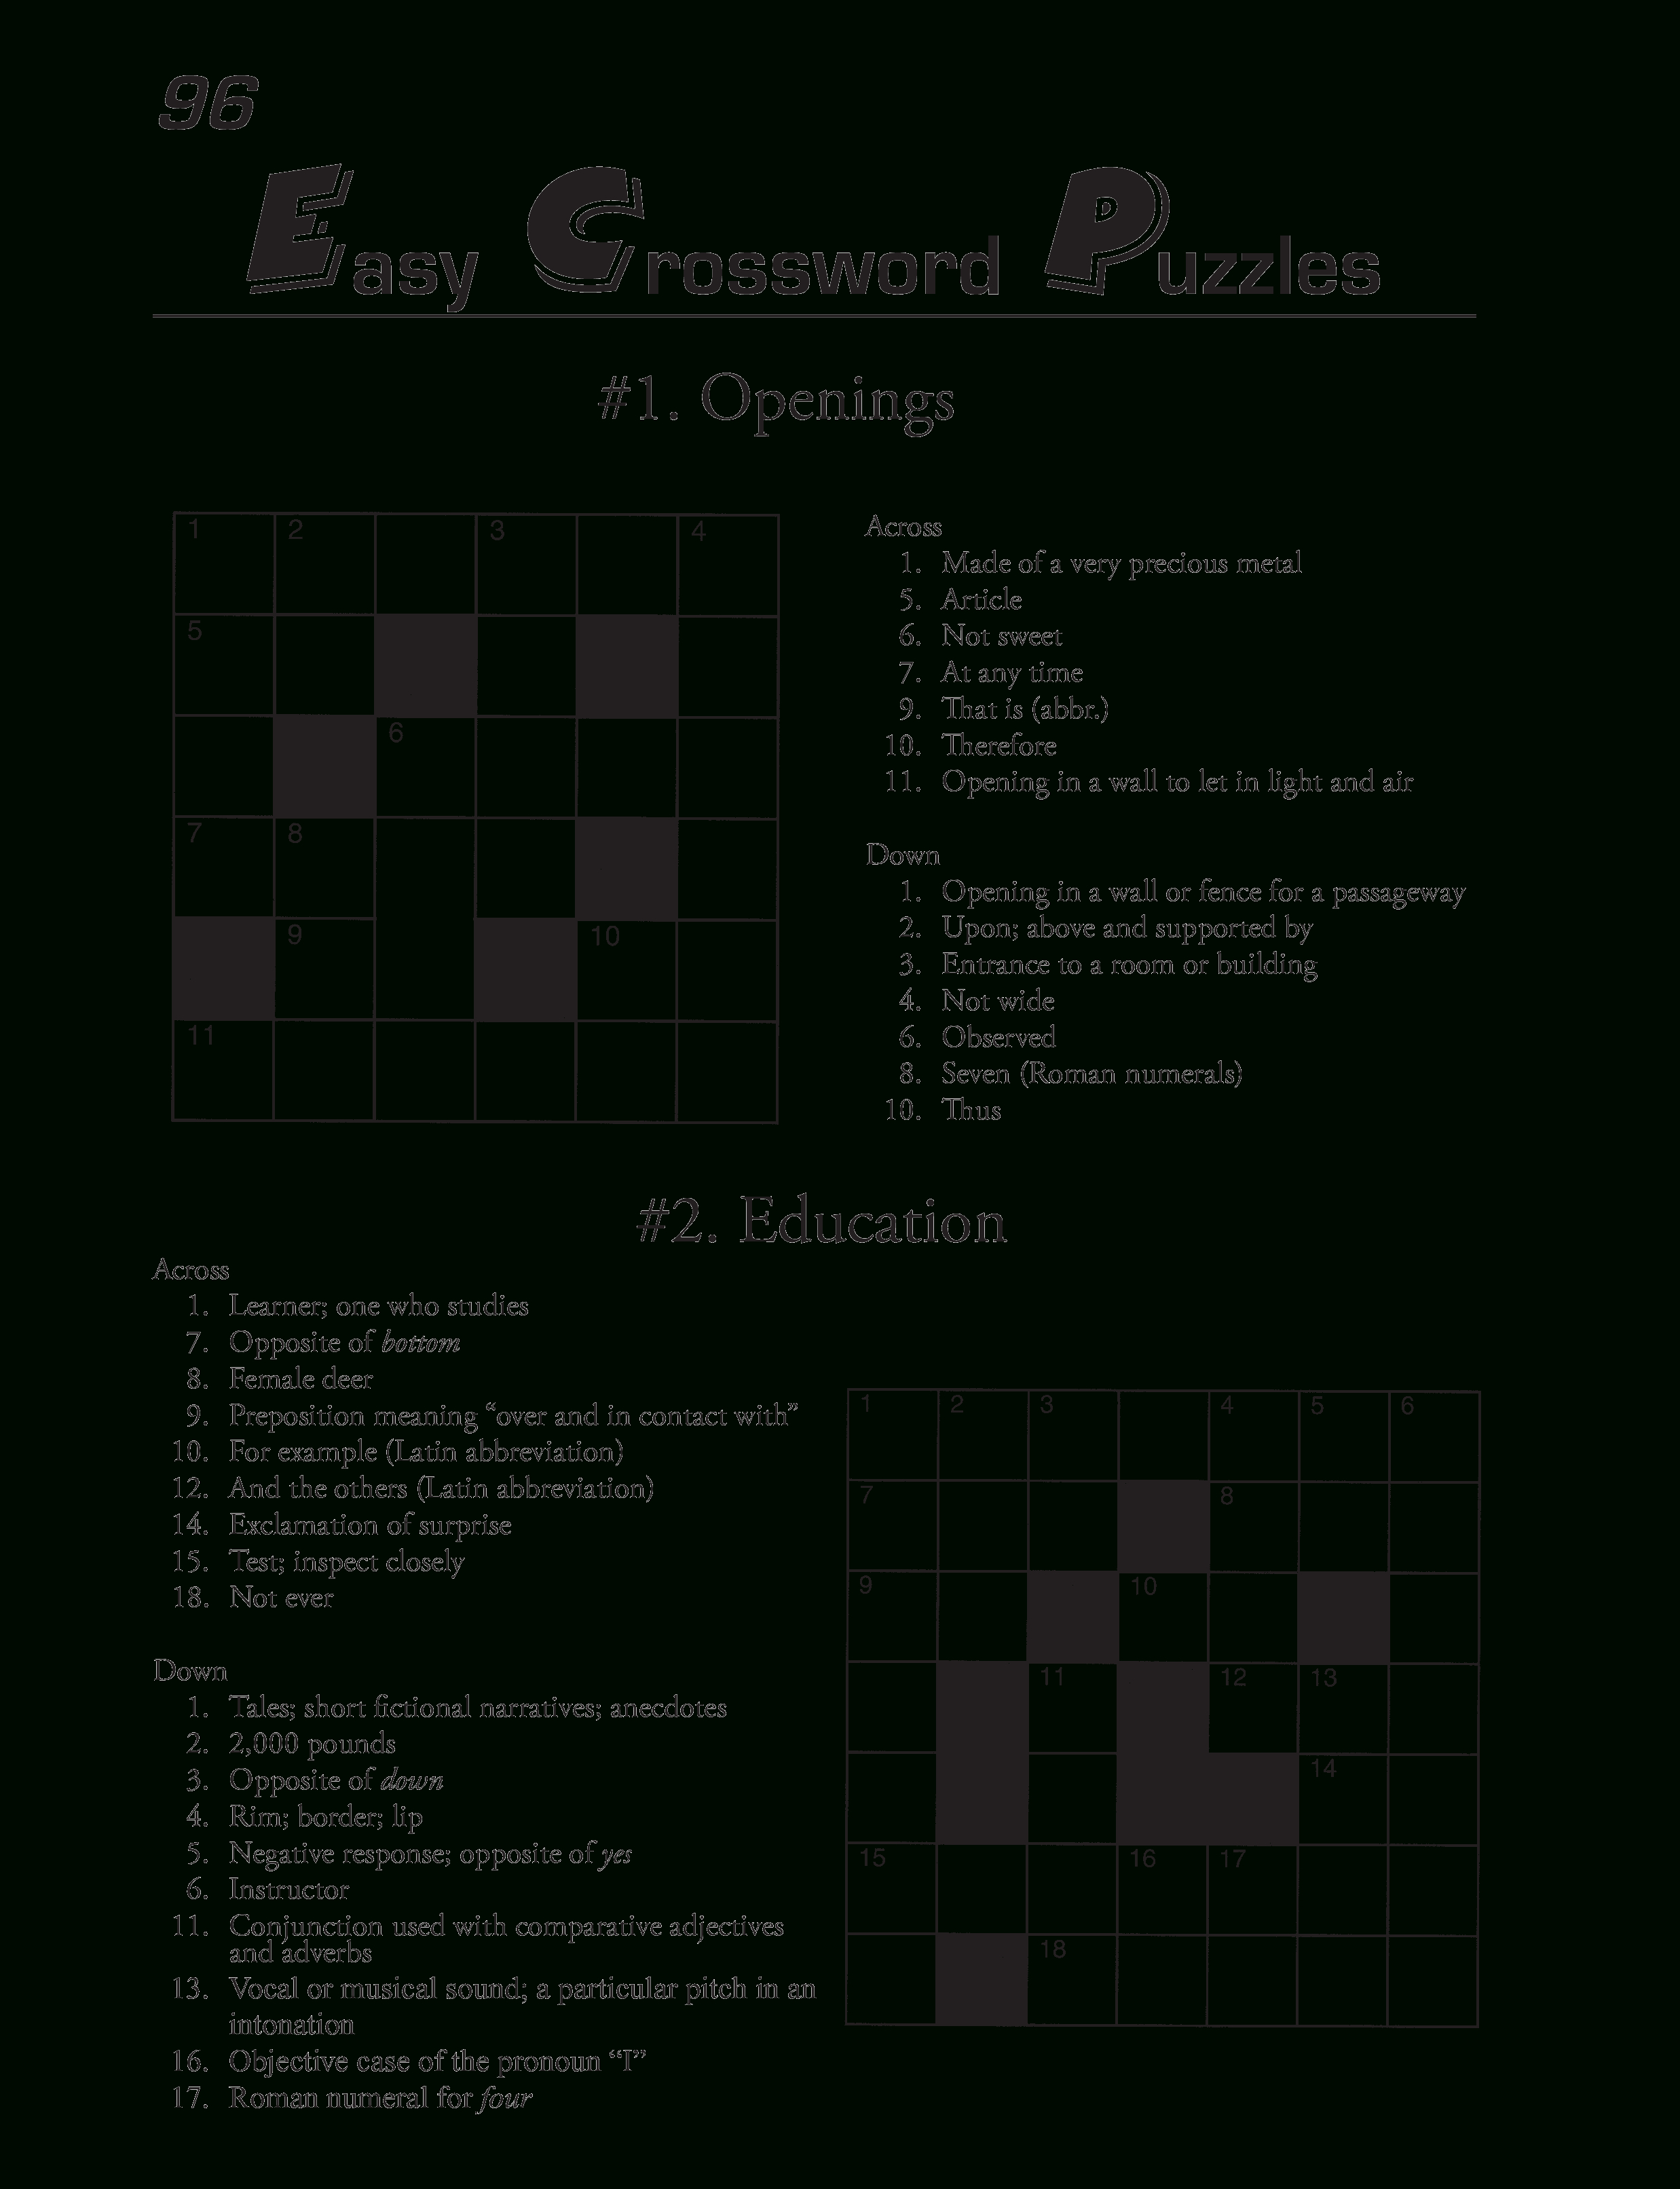 Printable Crossword Puzzles Template | Templates At - Printable Blank Crossword Puzzle Template